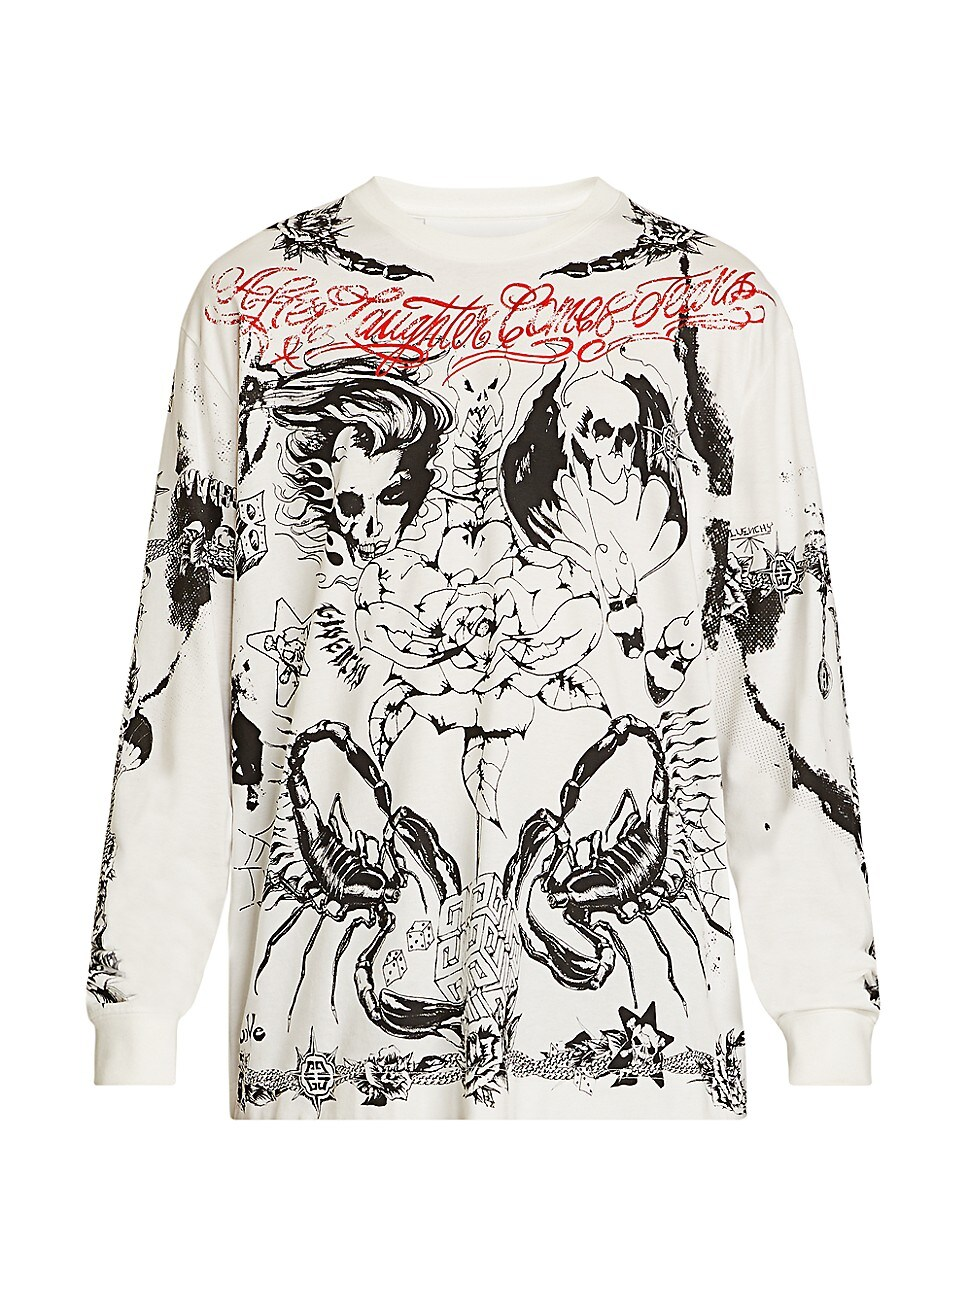 Givenchy Cottons MEN'S OVERSIZED TATTOO GRAPHIC SWEATSHIRT